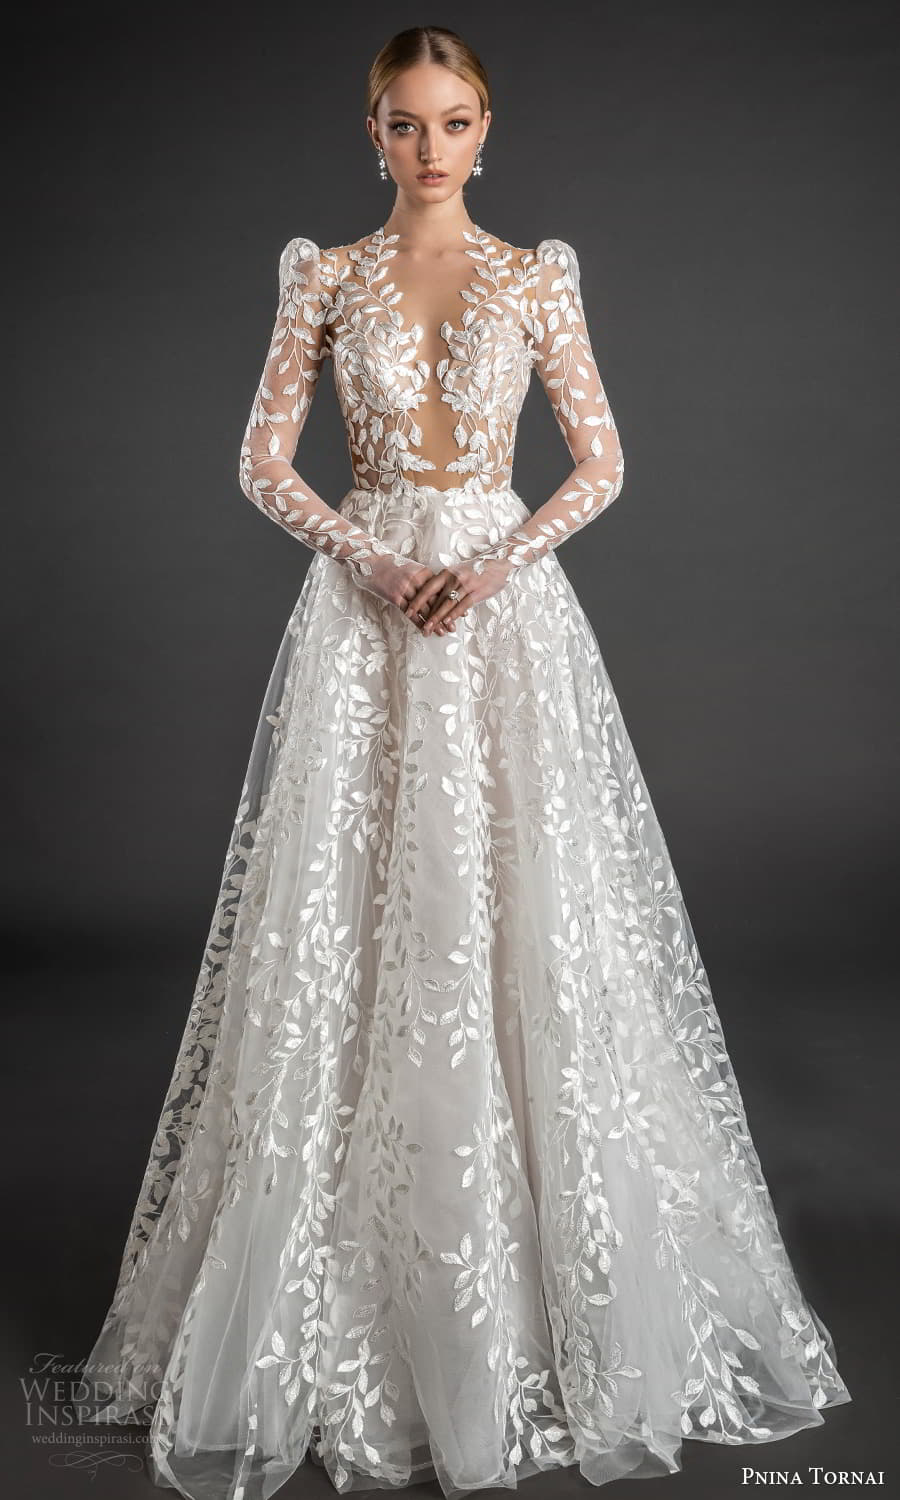 pnina tornai 2022 love bridal long puff sleeve plunging v neckline fully embellished lace a line ball gown wedding dress chapel train (1) fv